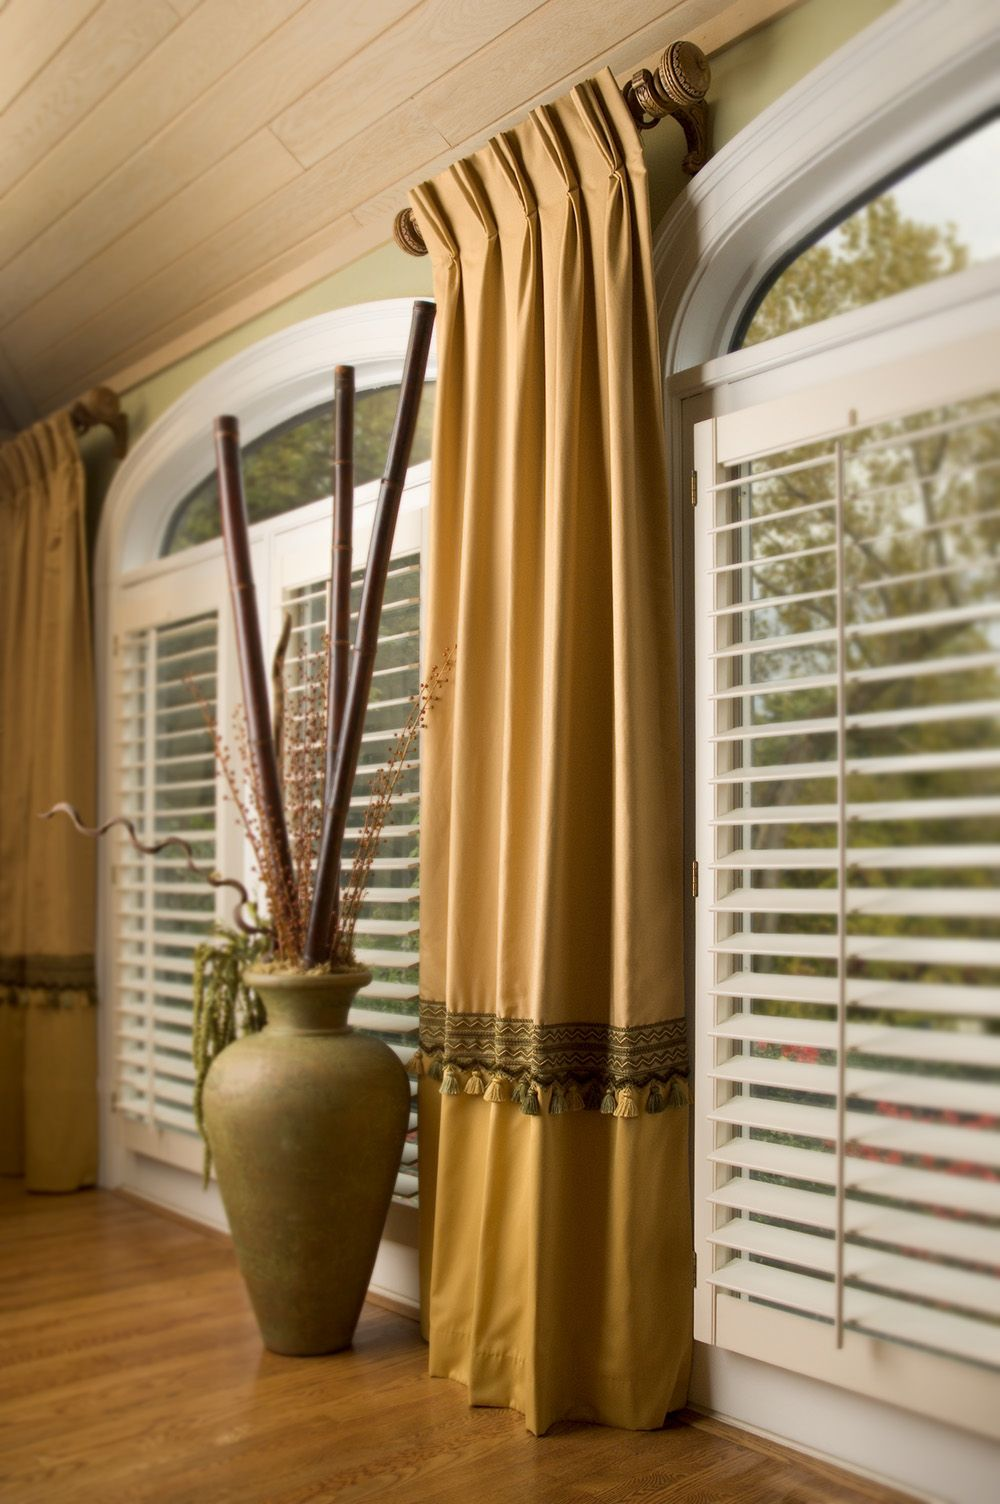 Window dressing ideas for arched windows  on the horizontal tassel fringe  devonshire collection by brimar